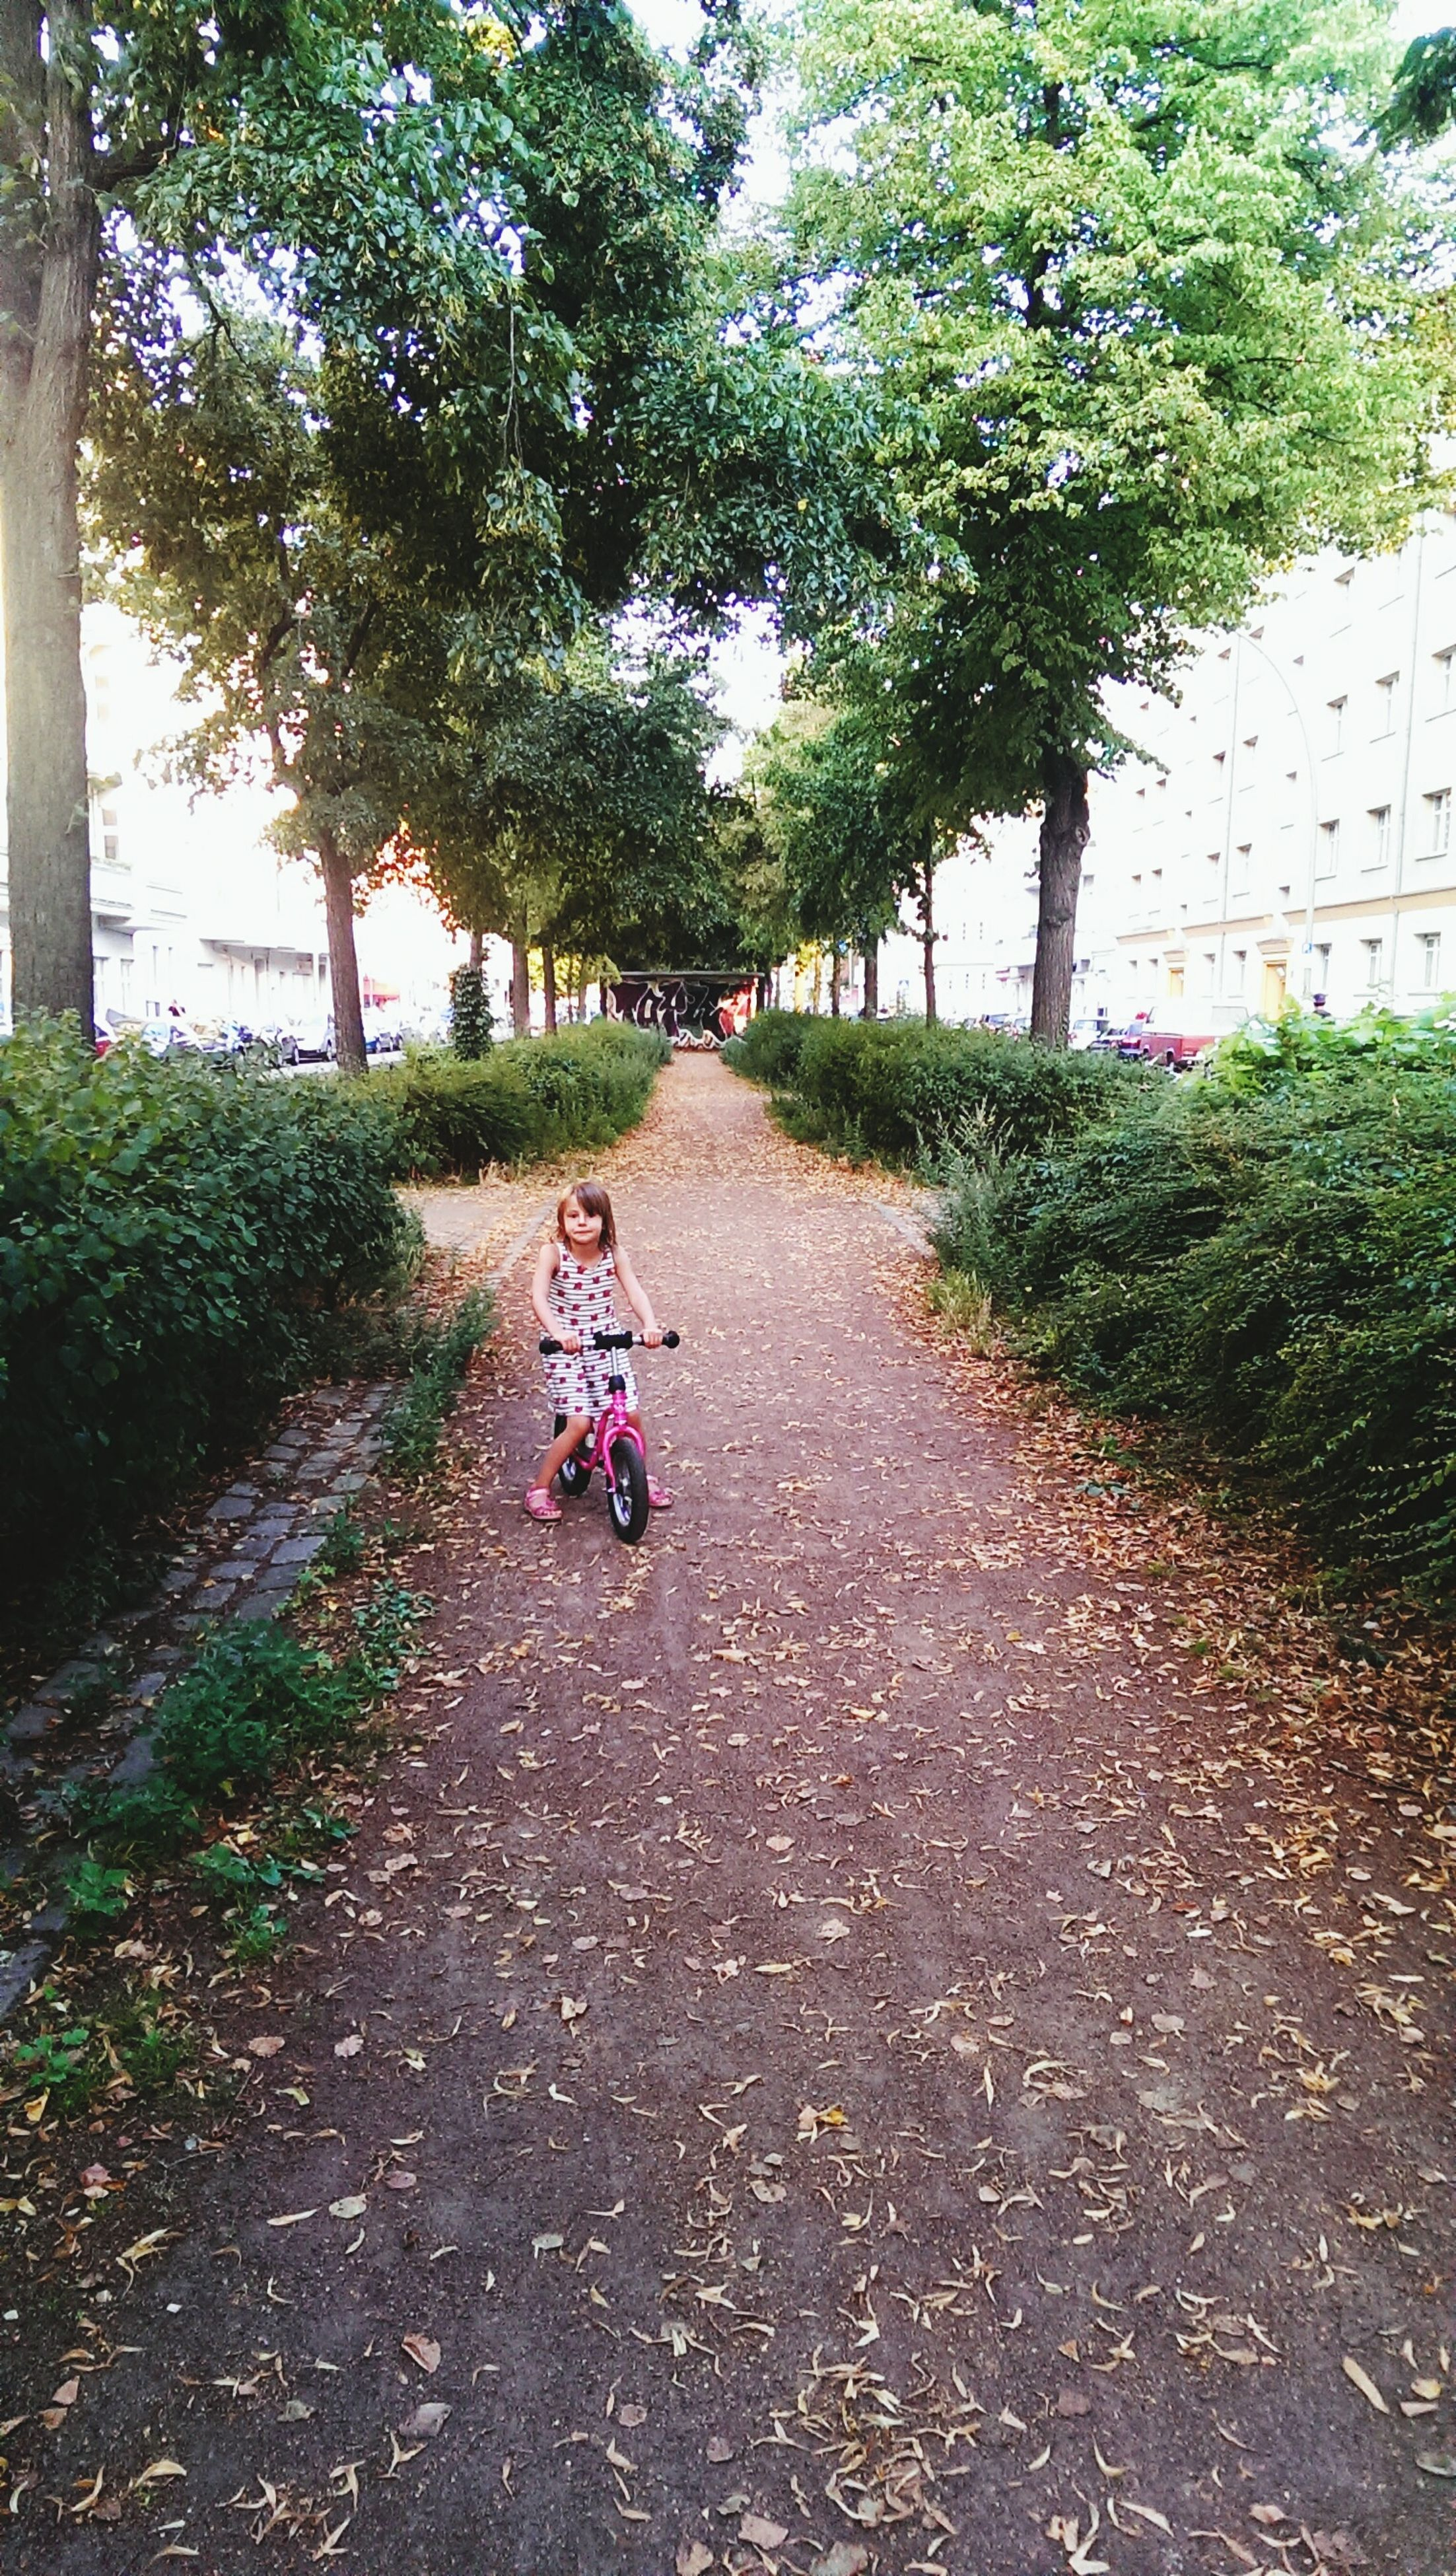 tree, the way forward, transportation, full length, road, lifestyles, bicycle, walking, street, leisure activity, rear view, diminishing perspective, childhood, park - man made space, mode of transport, day, riding, land vehicle